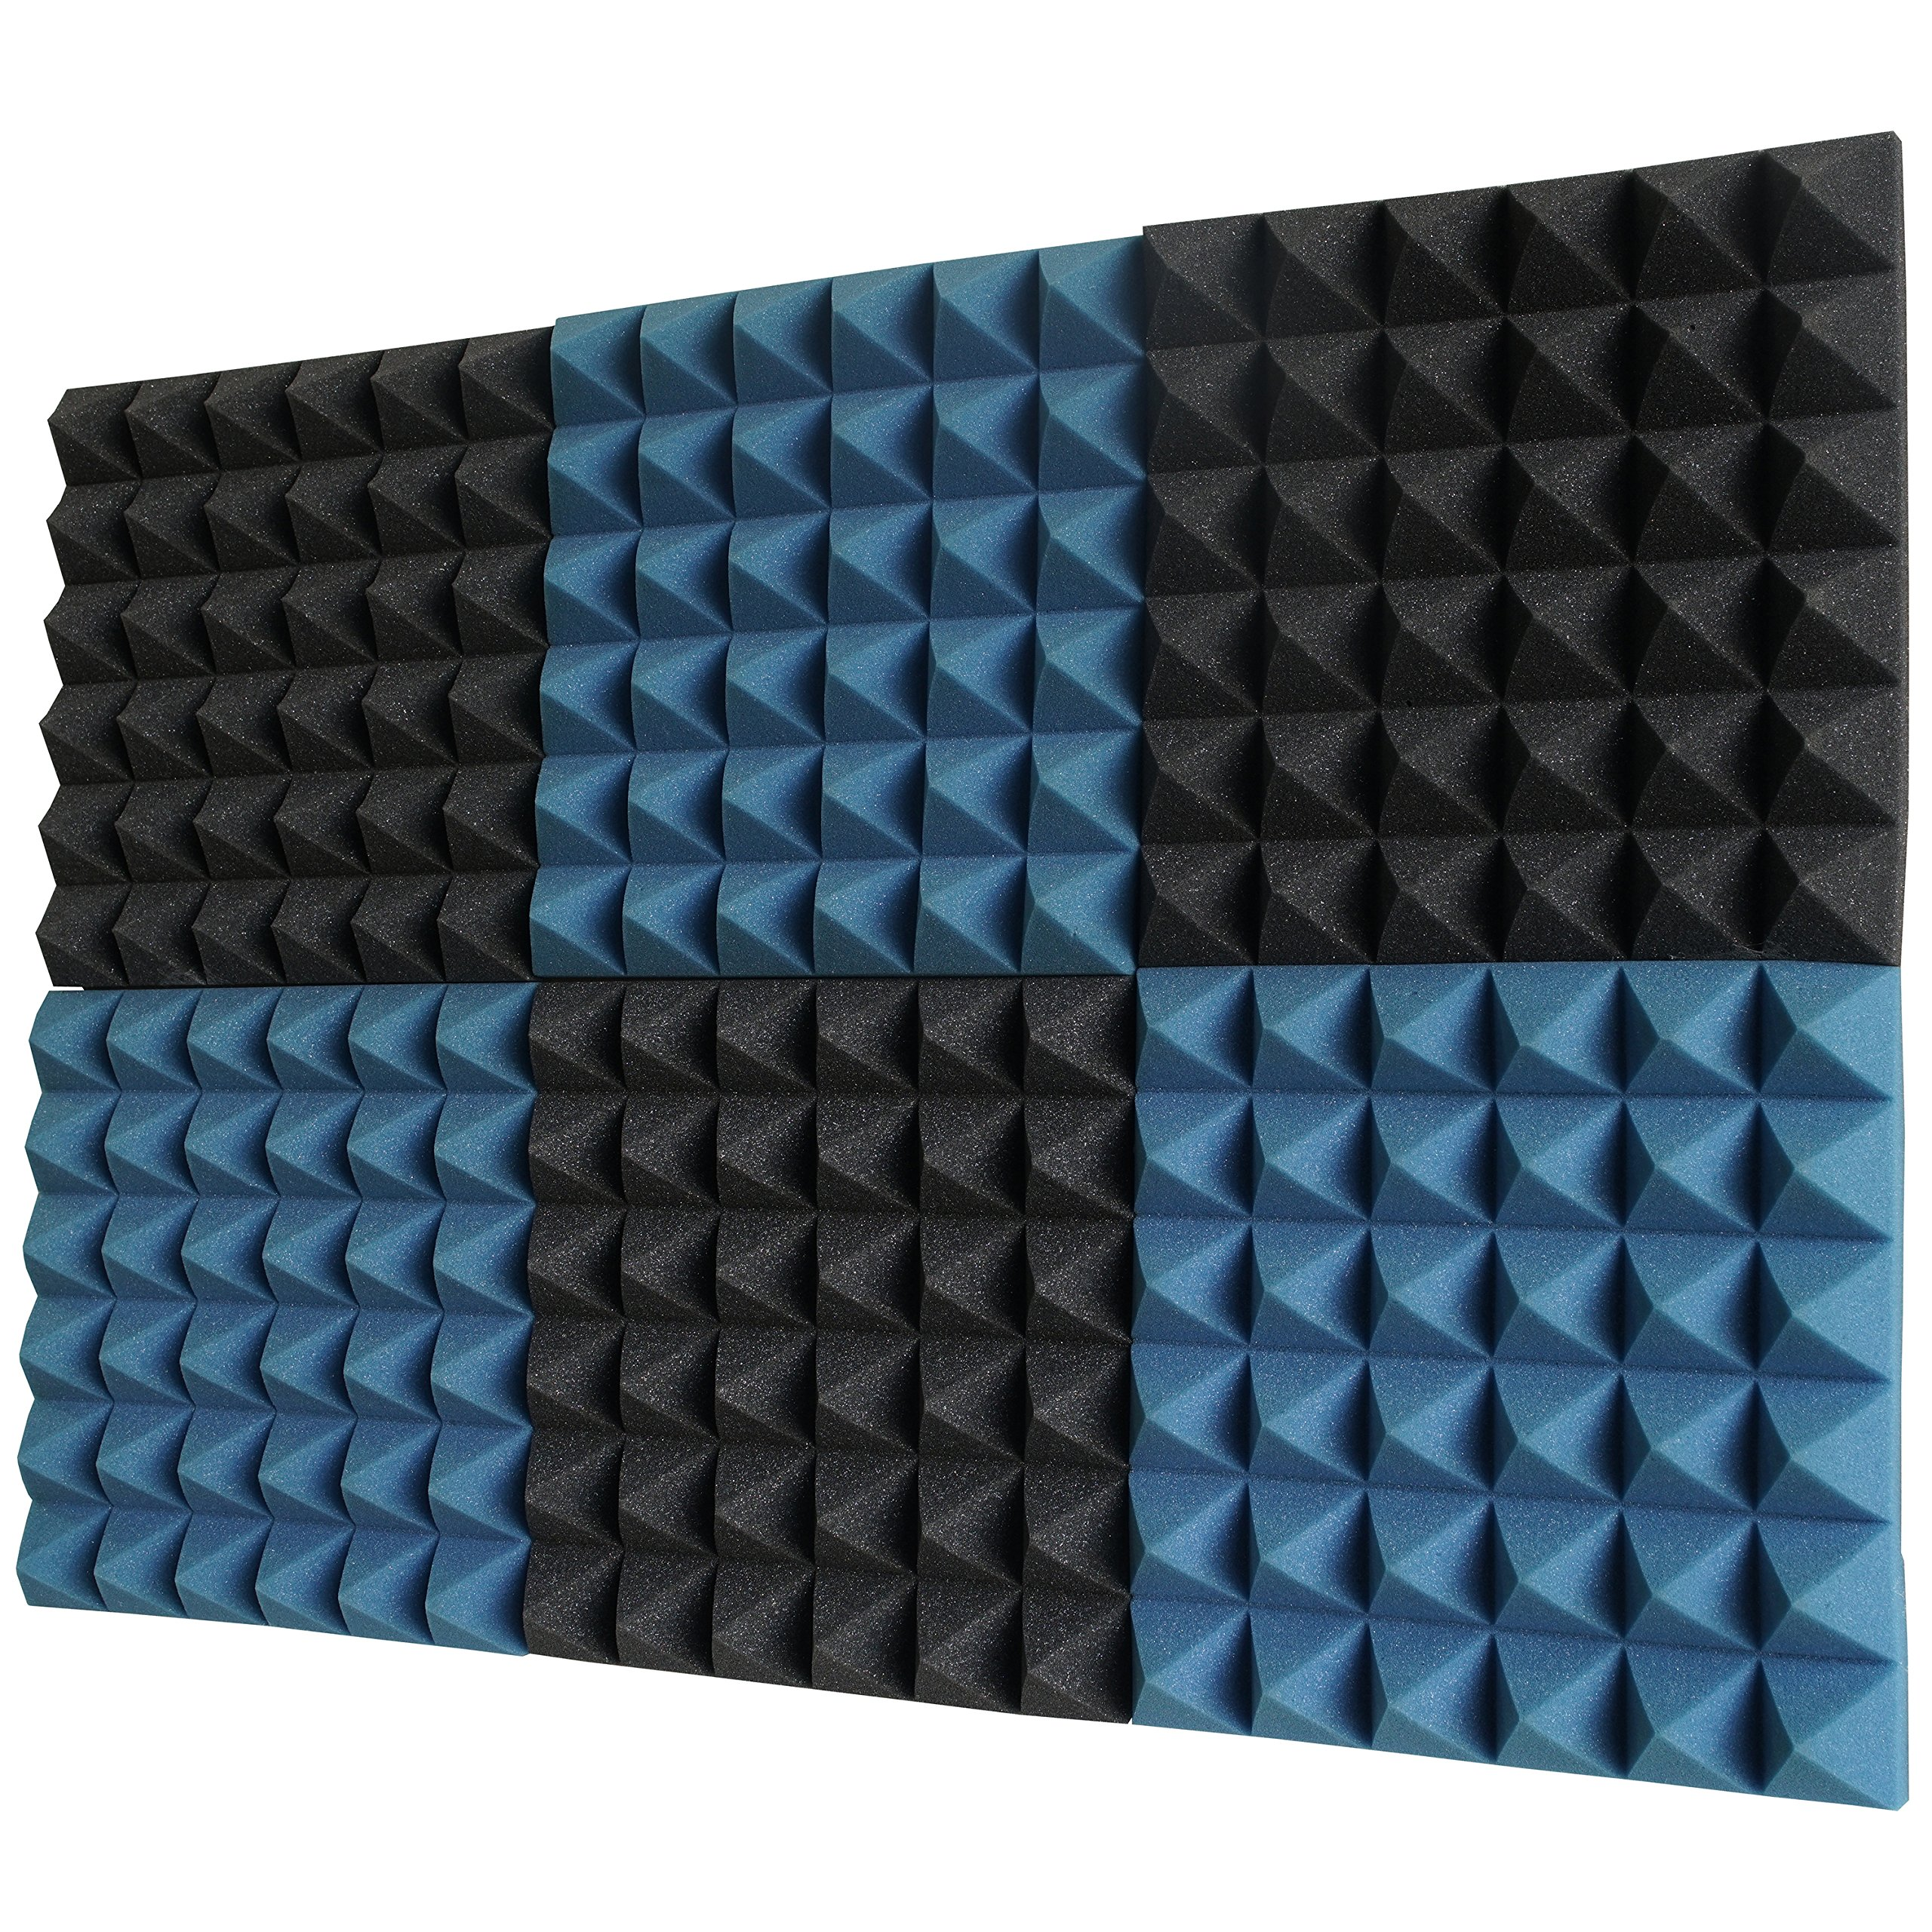 6 Pack - Ice Blue/Charcoal Acoustic Foam Sound Absorption Pyramid Studio Treatment Wall Panels, 2'' X 12'' X 12'' by Foamily